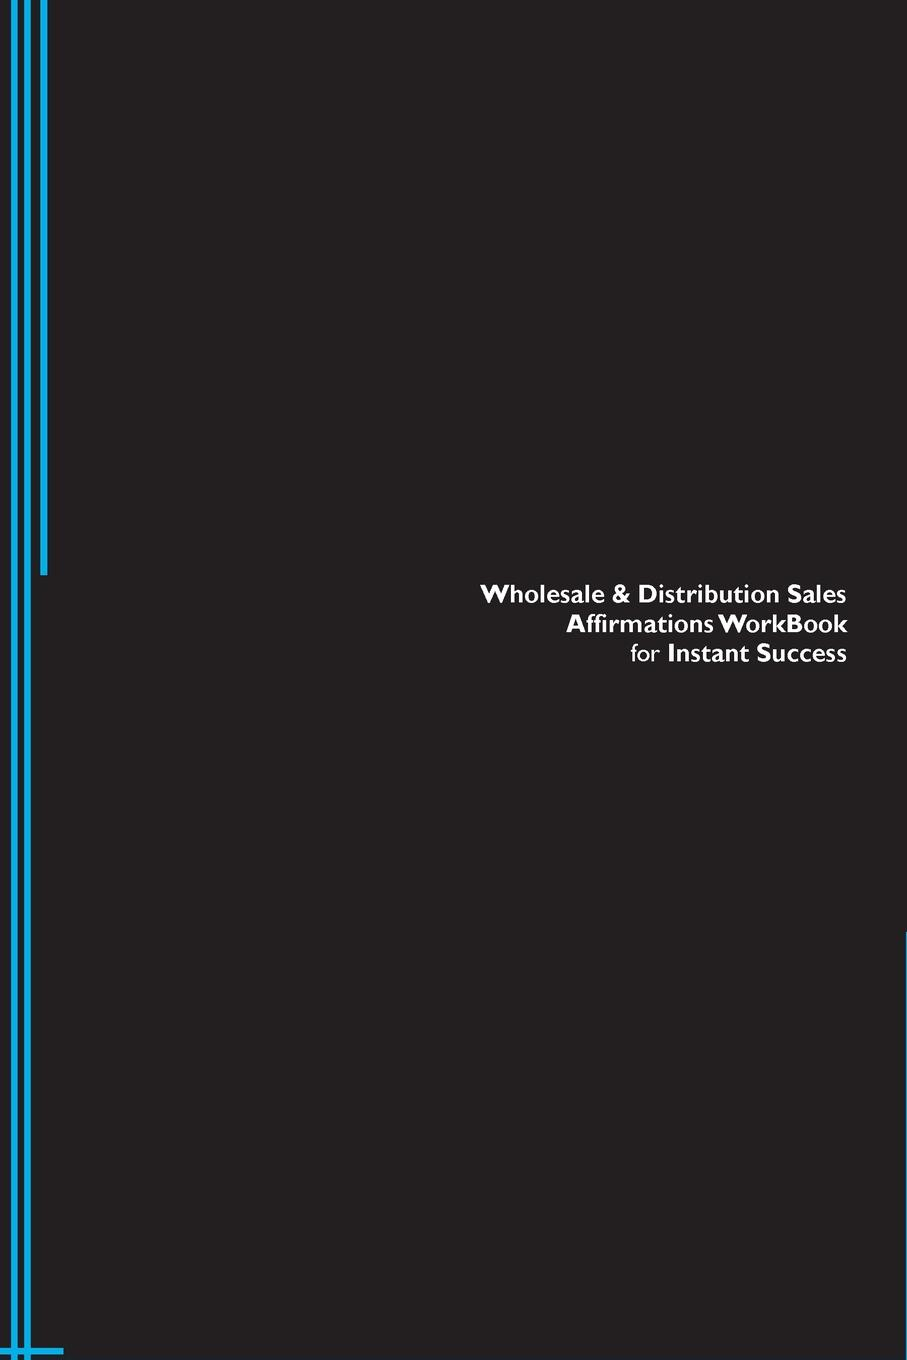 Success Experts Wholesale . Distribution Sales Affirmations Workbook for Instant Success. Wholesale . Distribution Sales Positive . Empowering Affirmations Workbook. Includes. Wholesale . Distribution Sales Subliminal Empowerment. teemzone wholesale